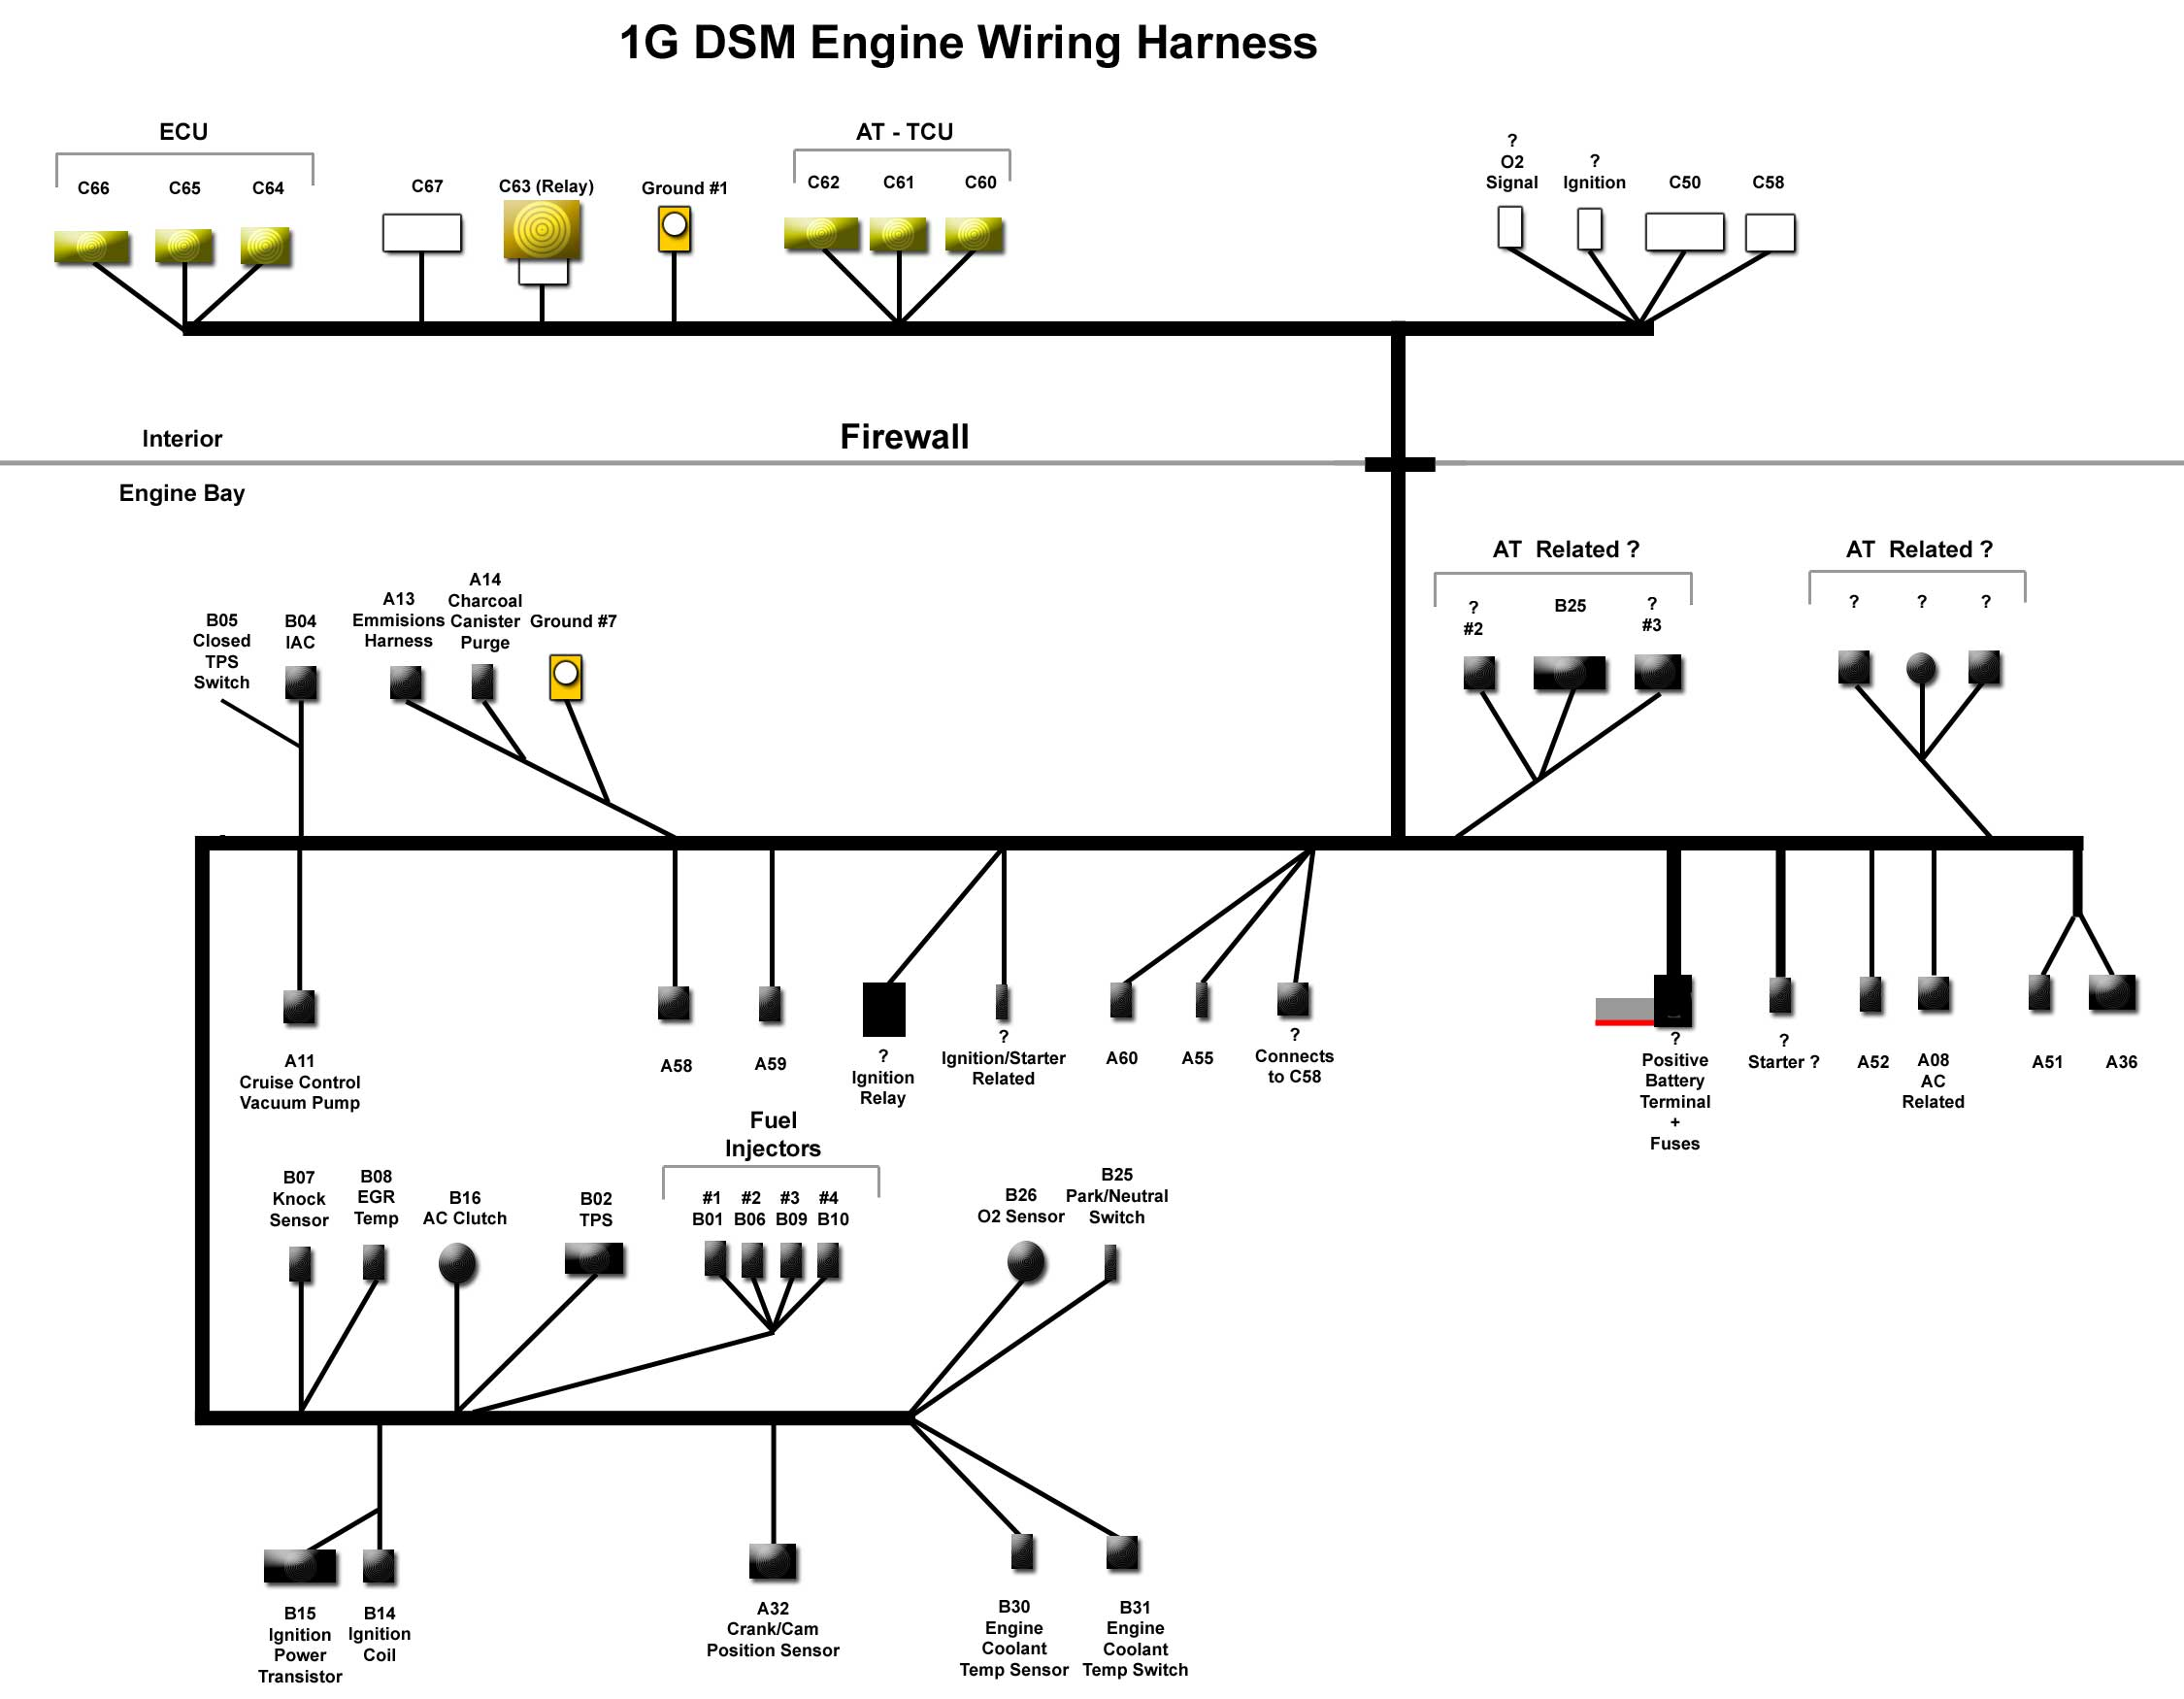 1G DSM EngineHarness 1gb dsm 4g63 turbo wiring harness diagram wiring harness diagram at bayanpartner.co